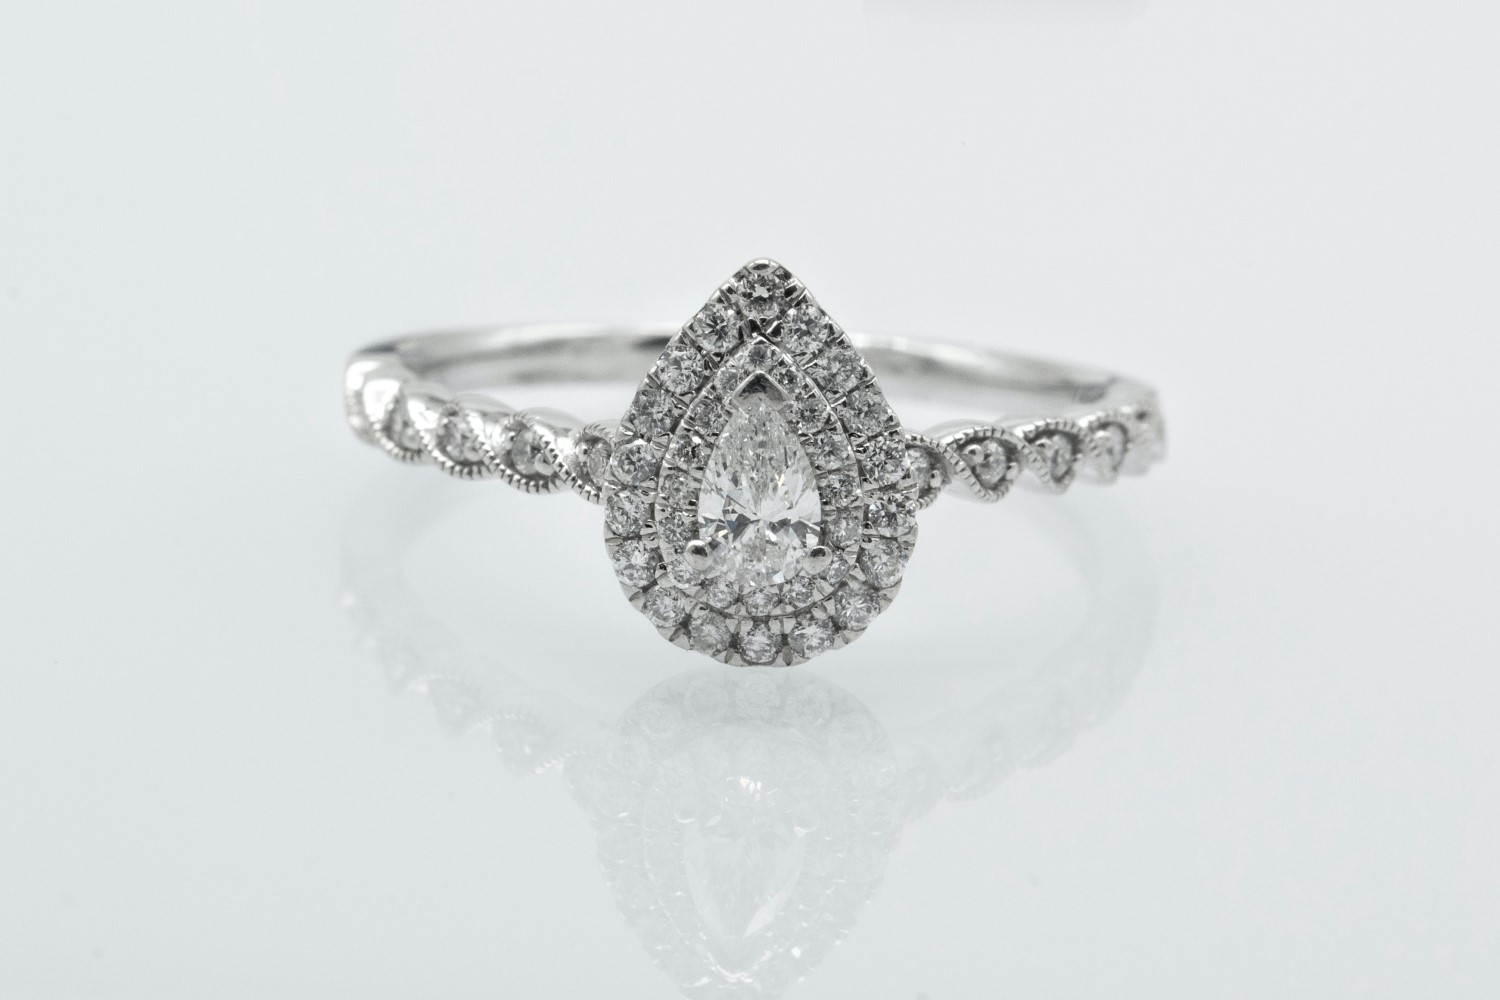 Engagement Ring Knowledge Center